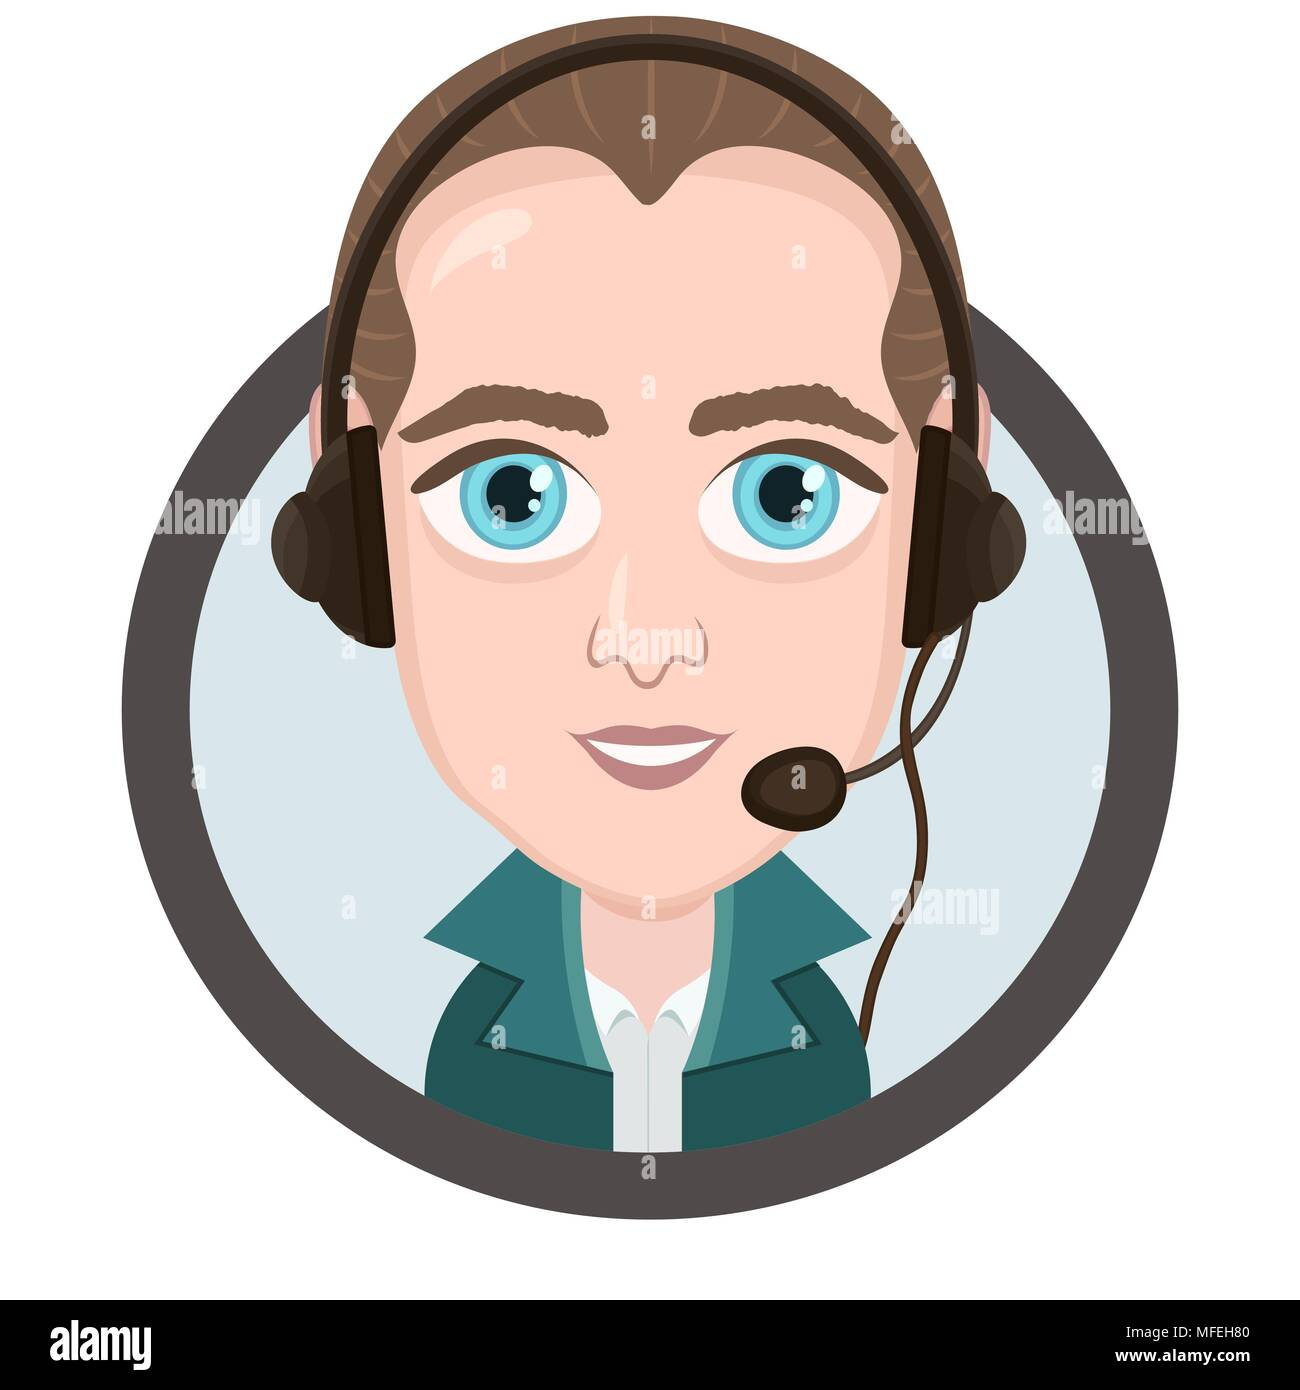 Cartoon character vector drawing portrait boy call center operator icon sticker man with big eyes with a headset headphones and microphone in rou